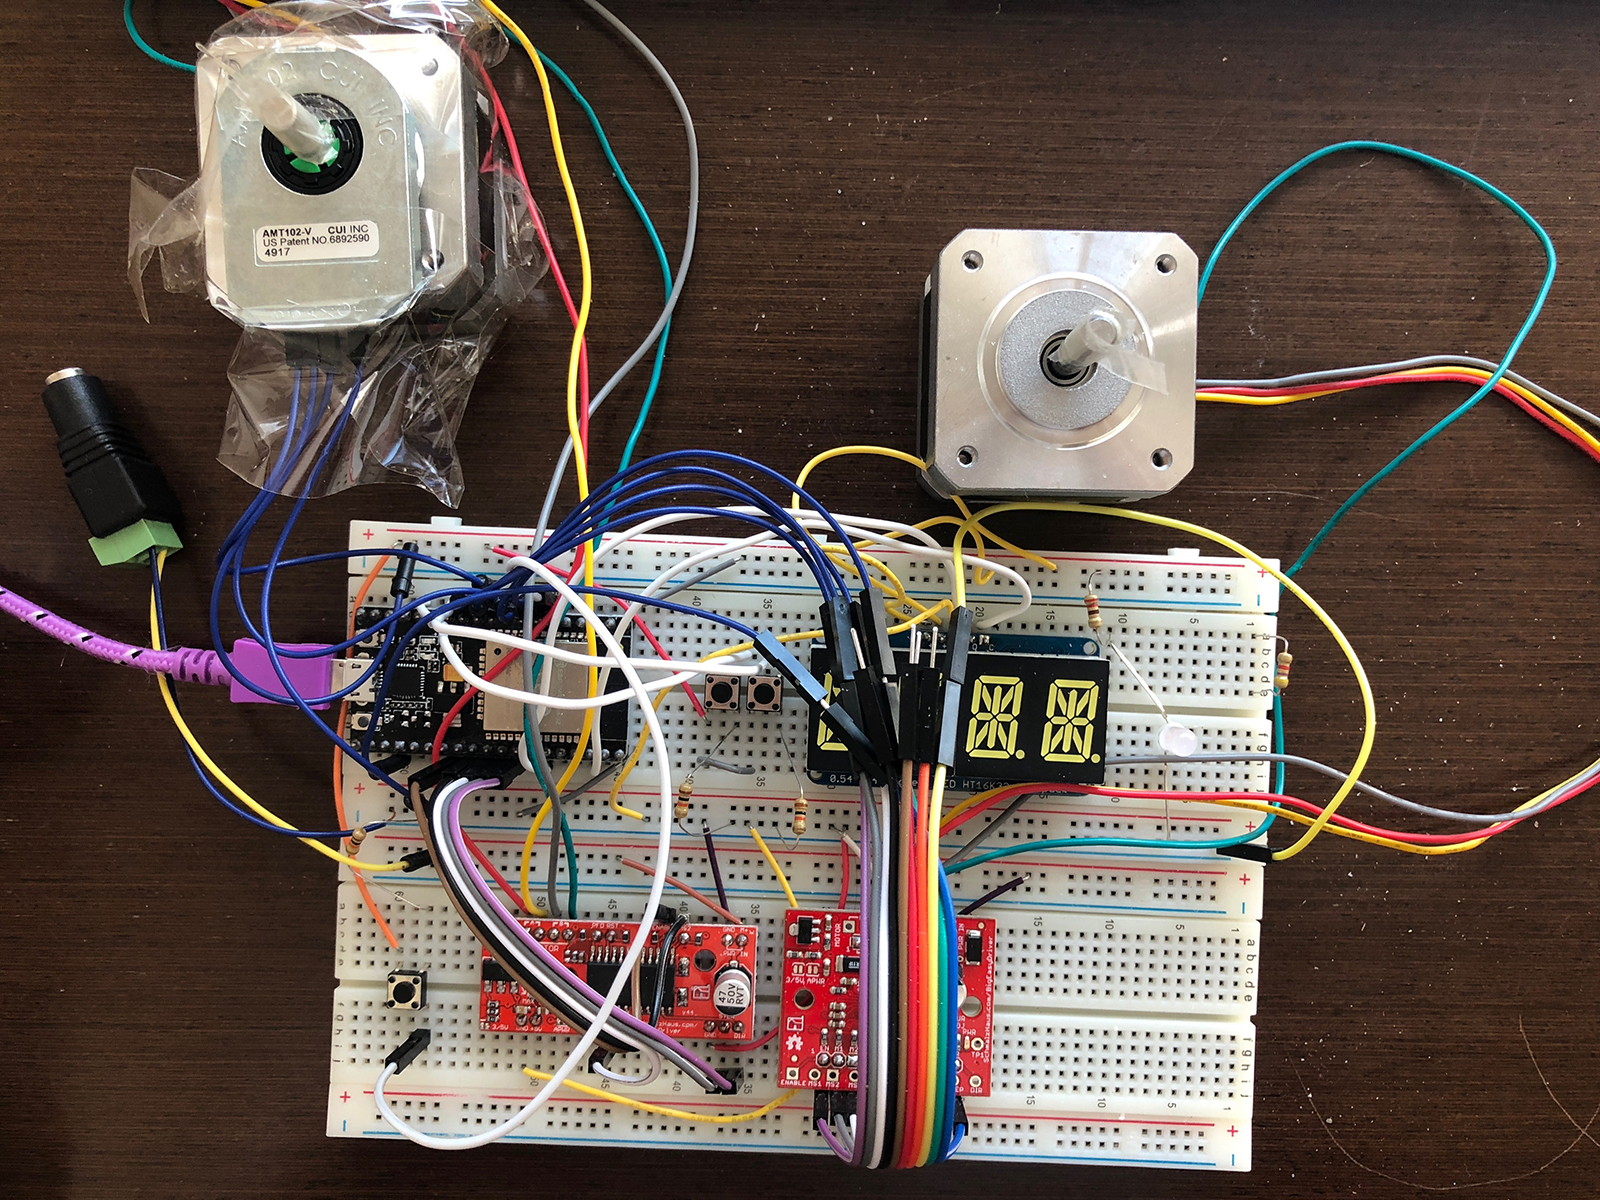 Connected Tools Devices That Mediate Smartphone Consumption Will Need To Breadboard This And Report Some Results The Esp32 Connects Internet Downloads Actual Average Performance Users Can Then Check On Screen Have A Visual